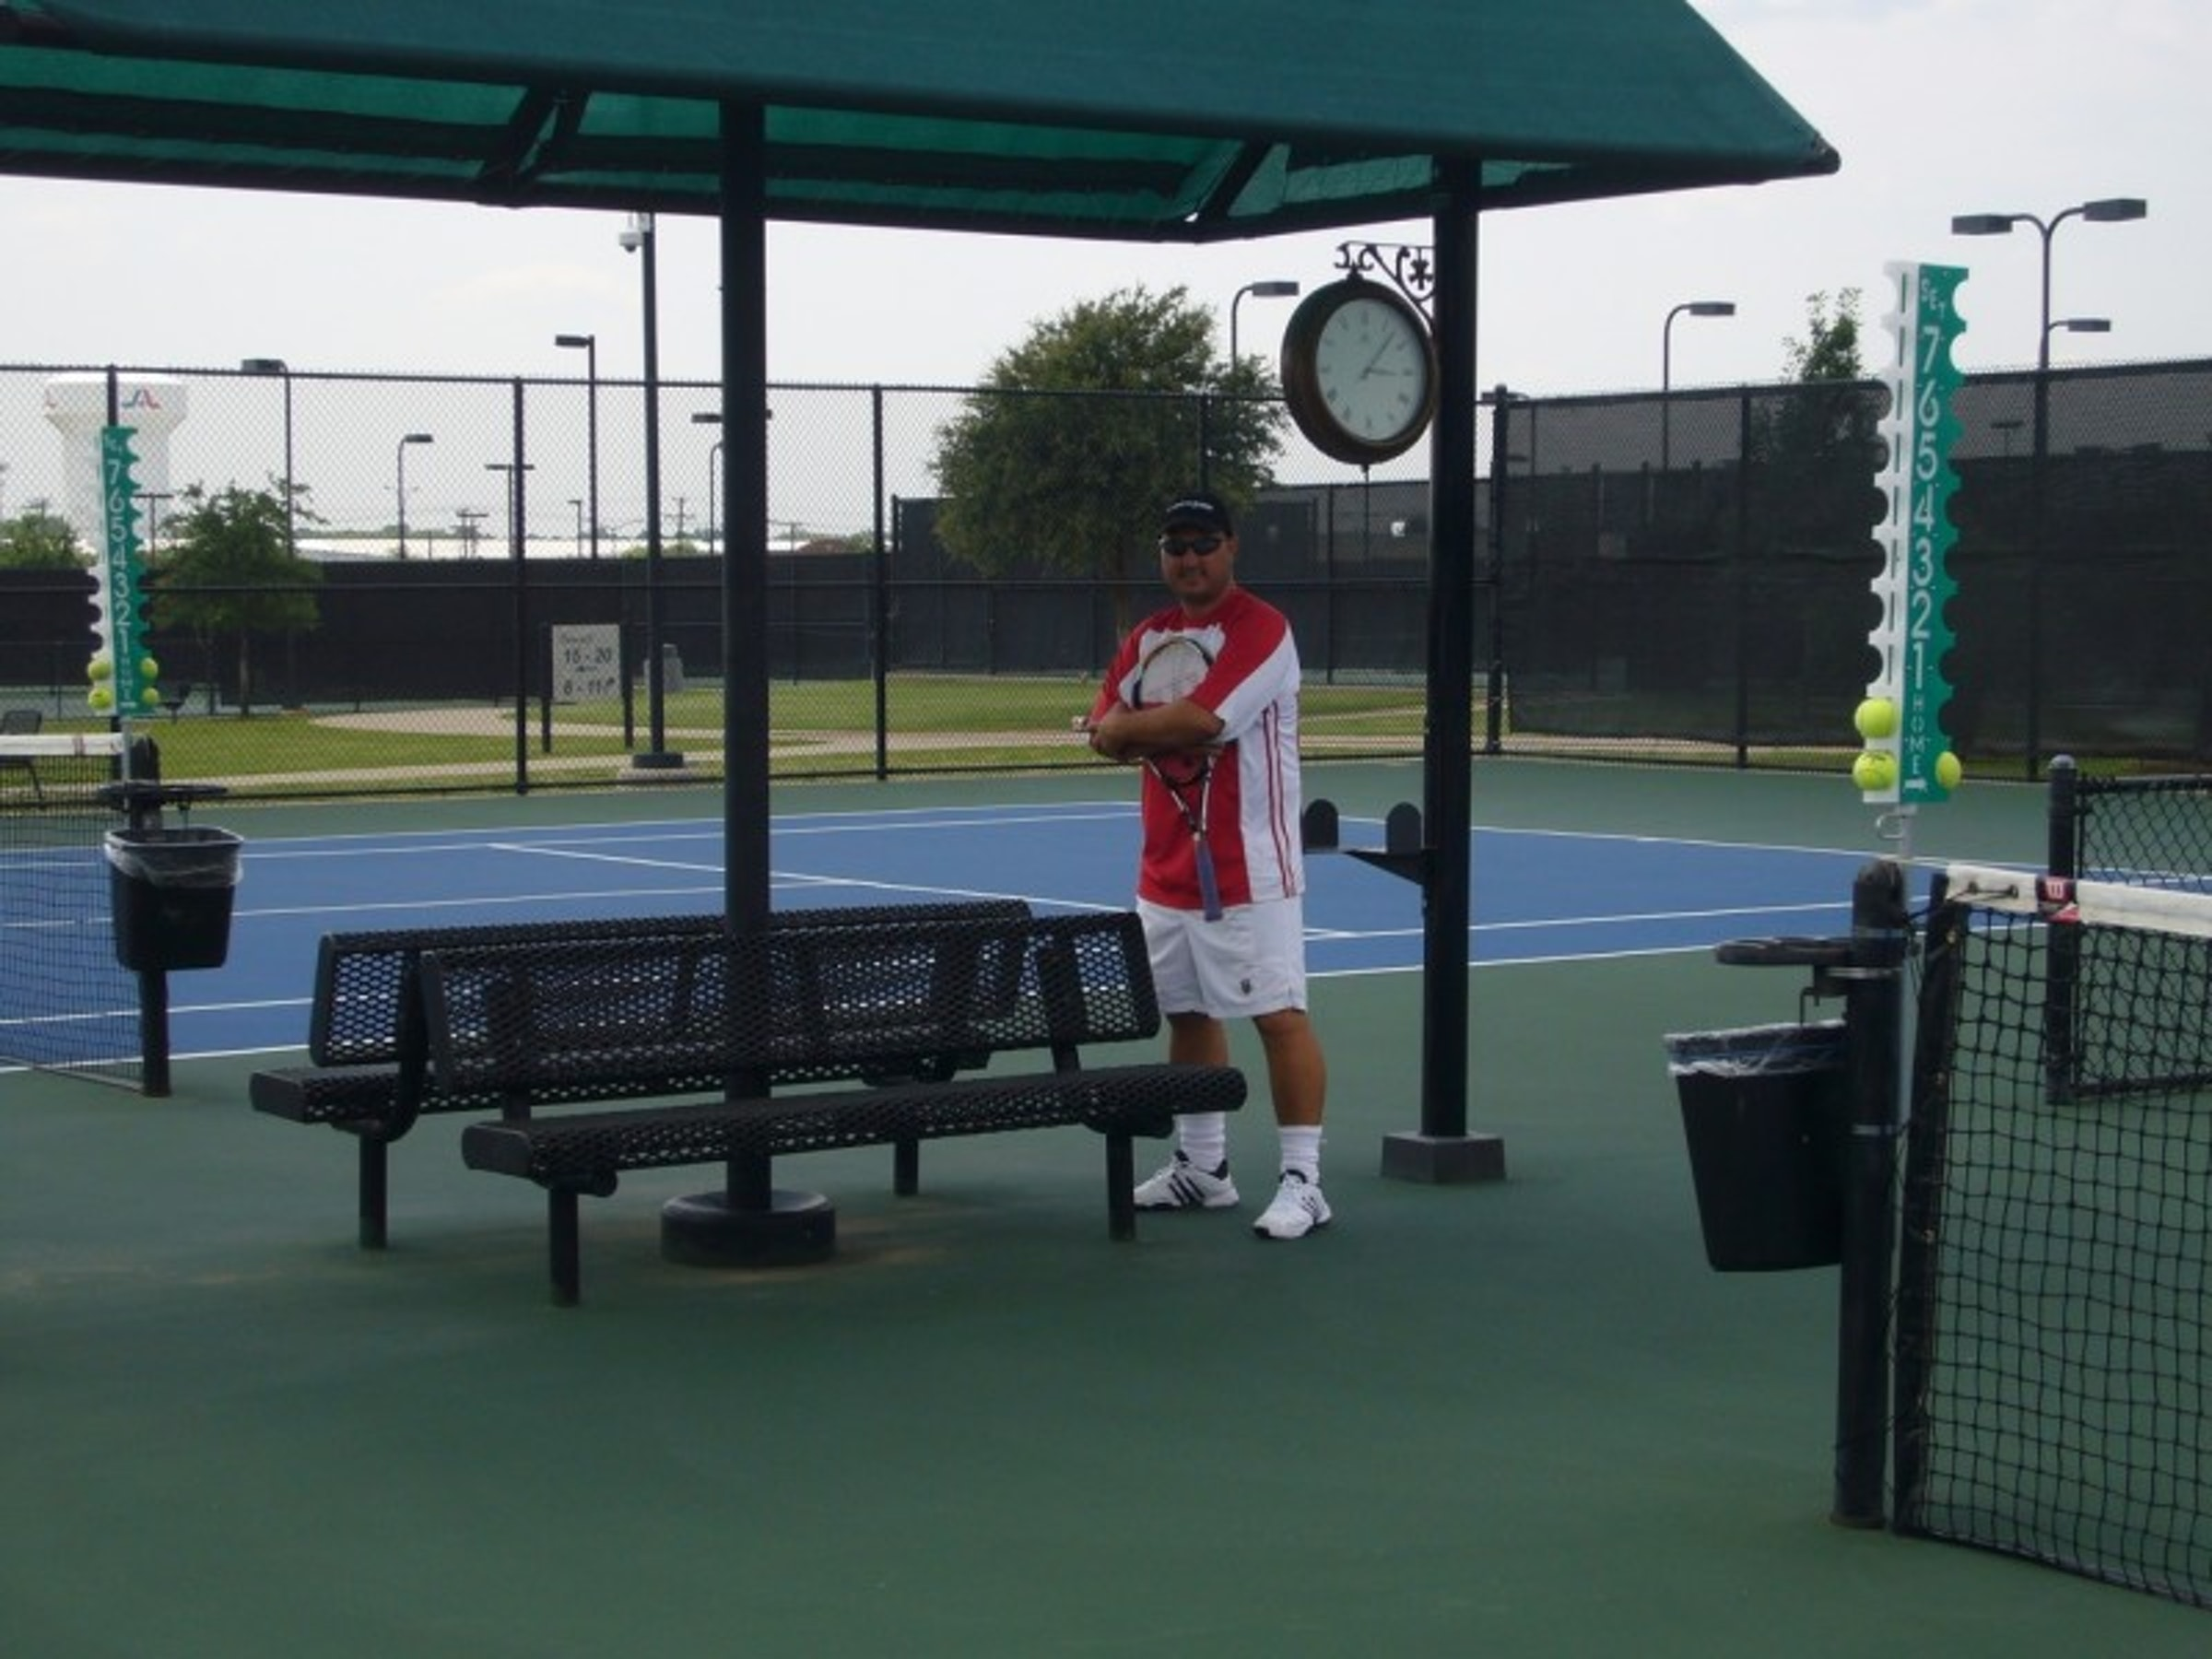 Arlington Tennis Center in Beyond Dallas